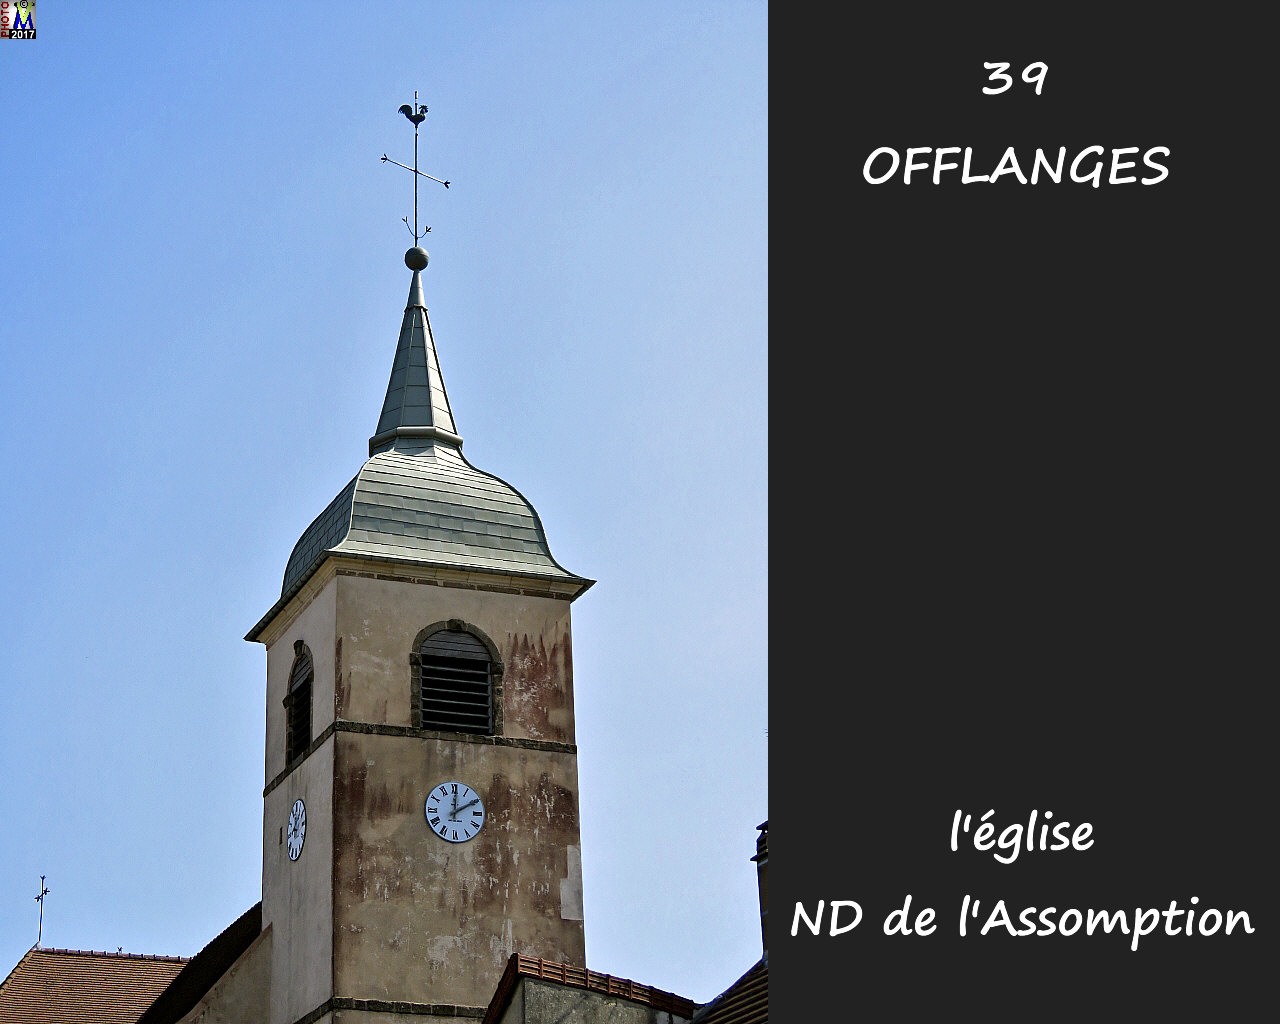 39OFFLANGES_eglise_110.jpg